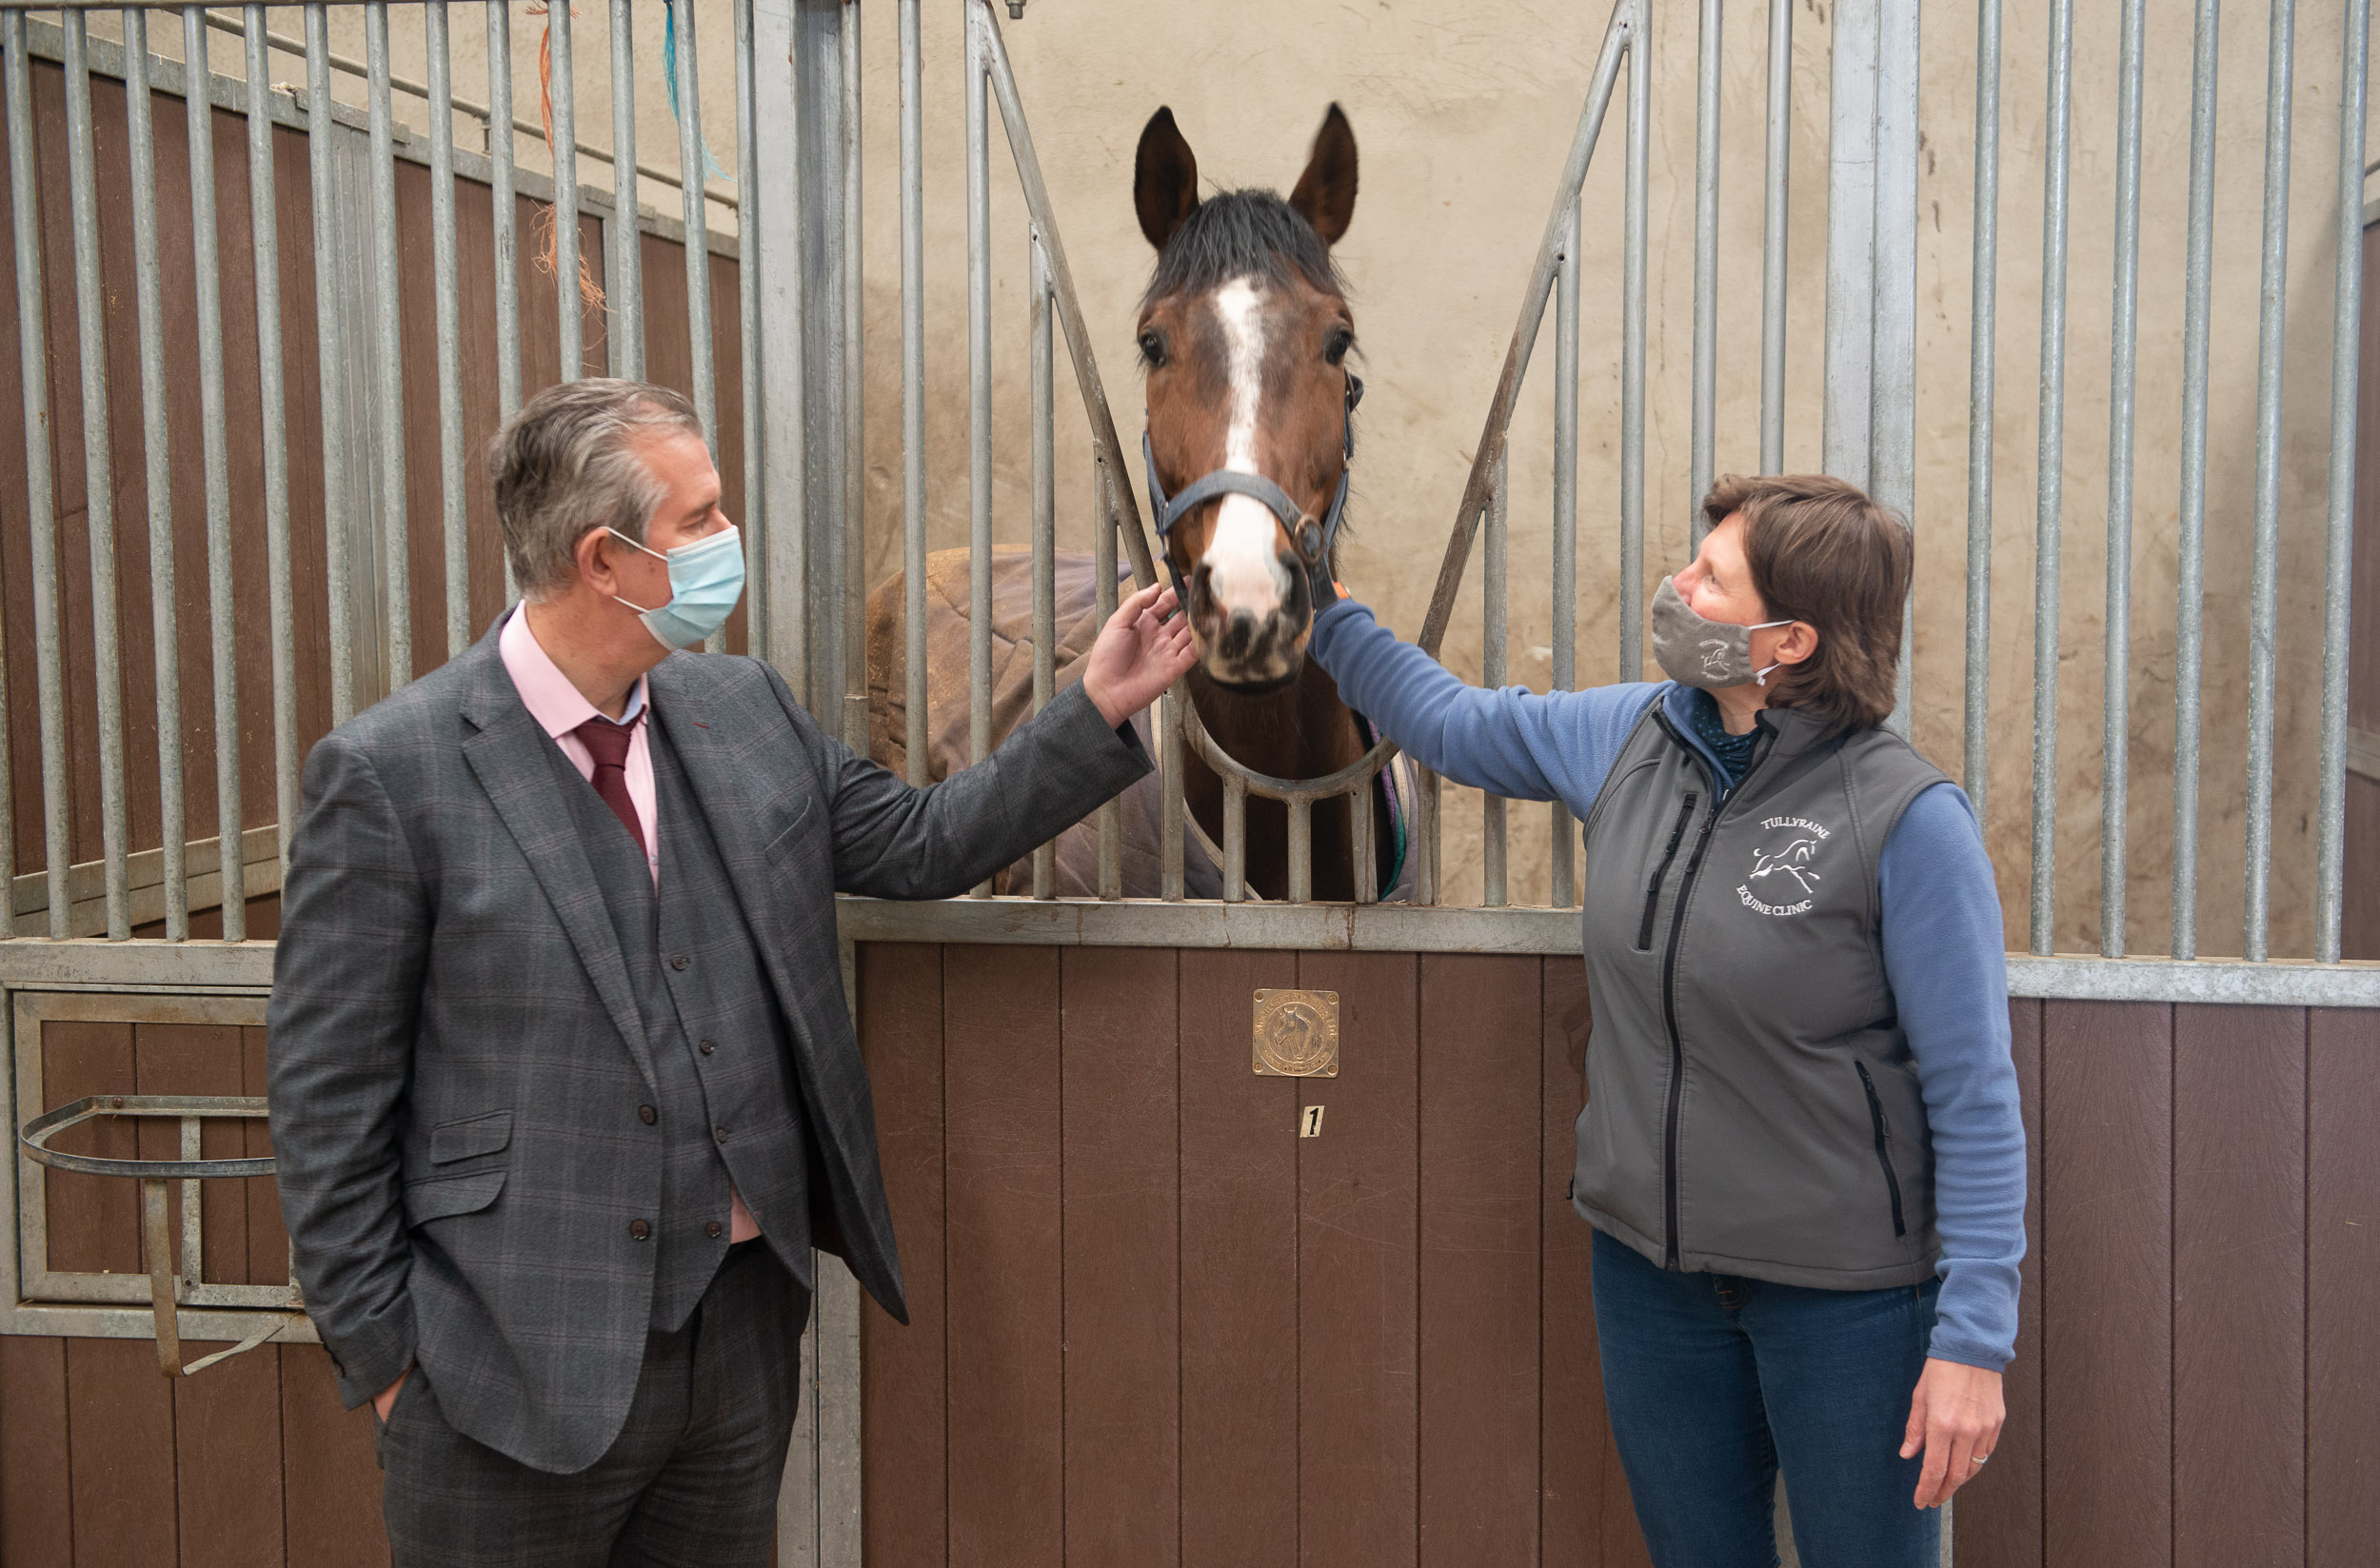 Poots gallops to support rural micro businesses - Newry Times - news newry